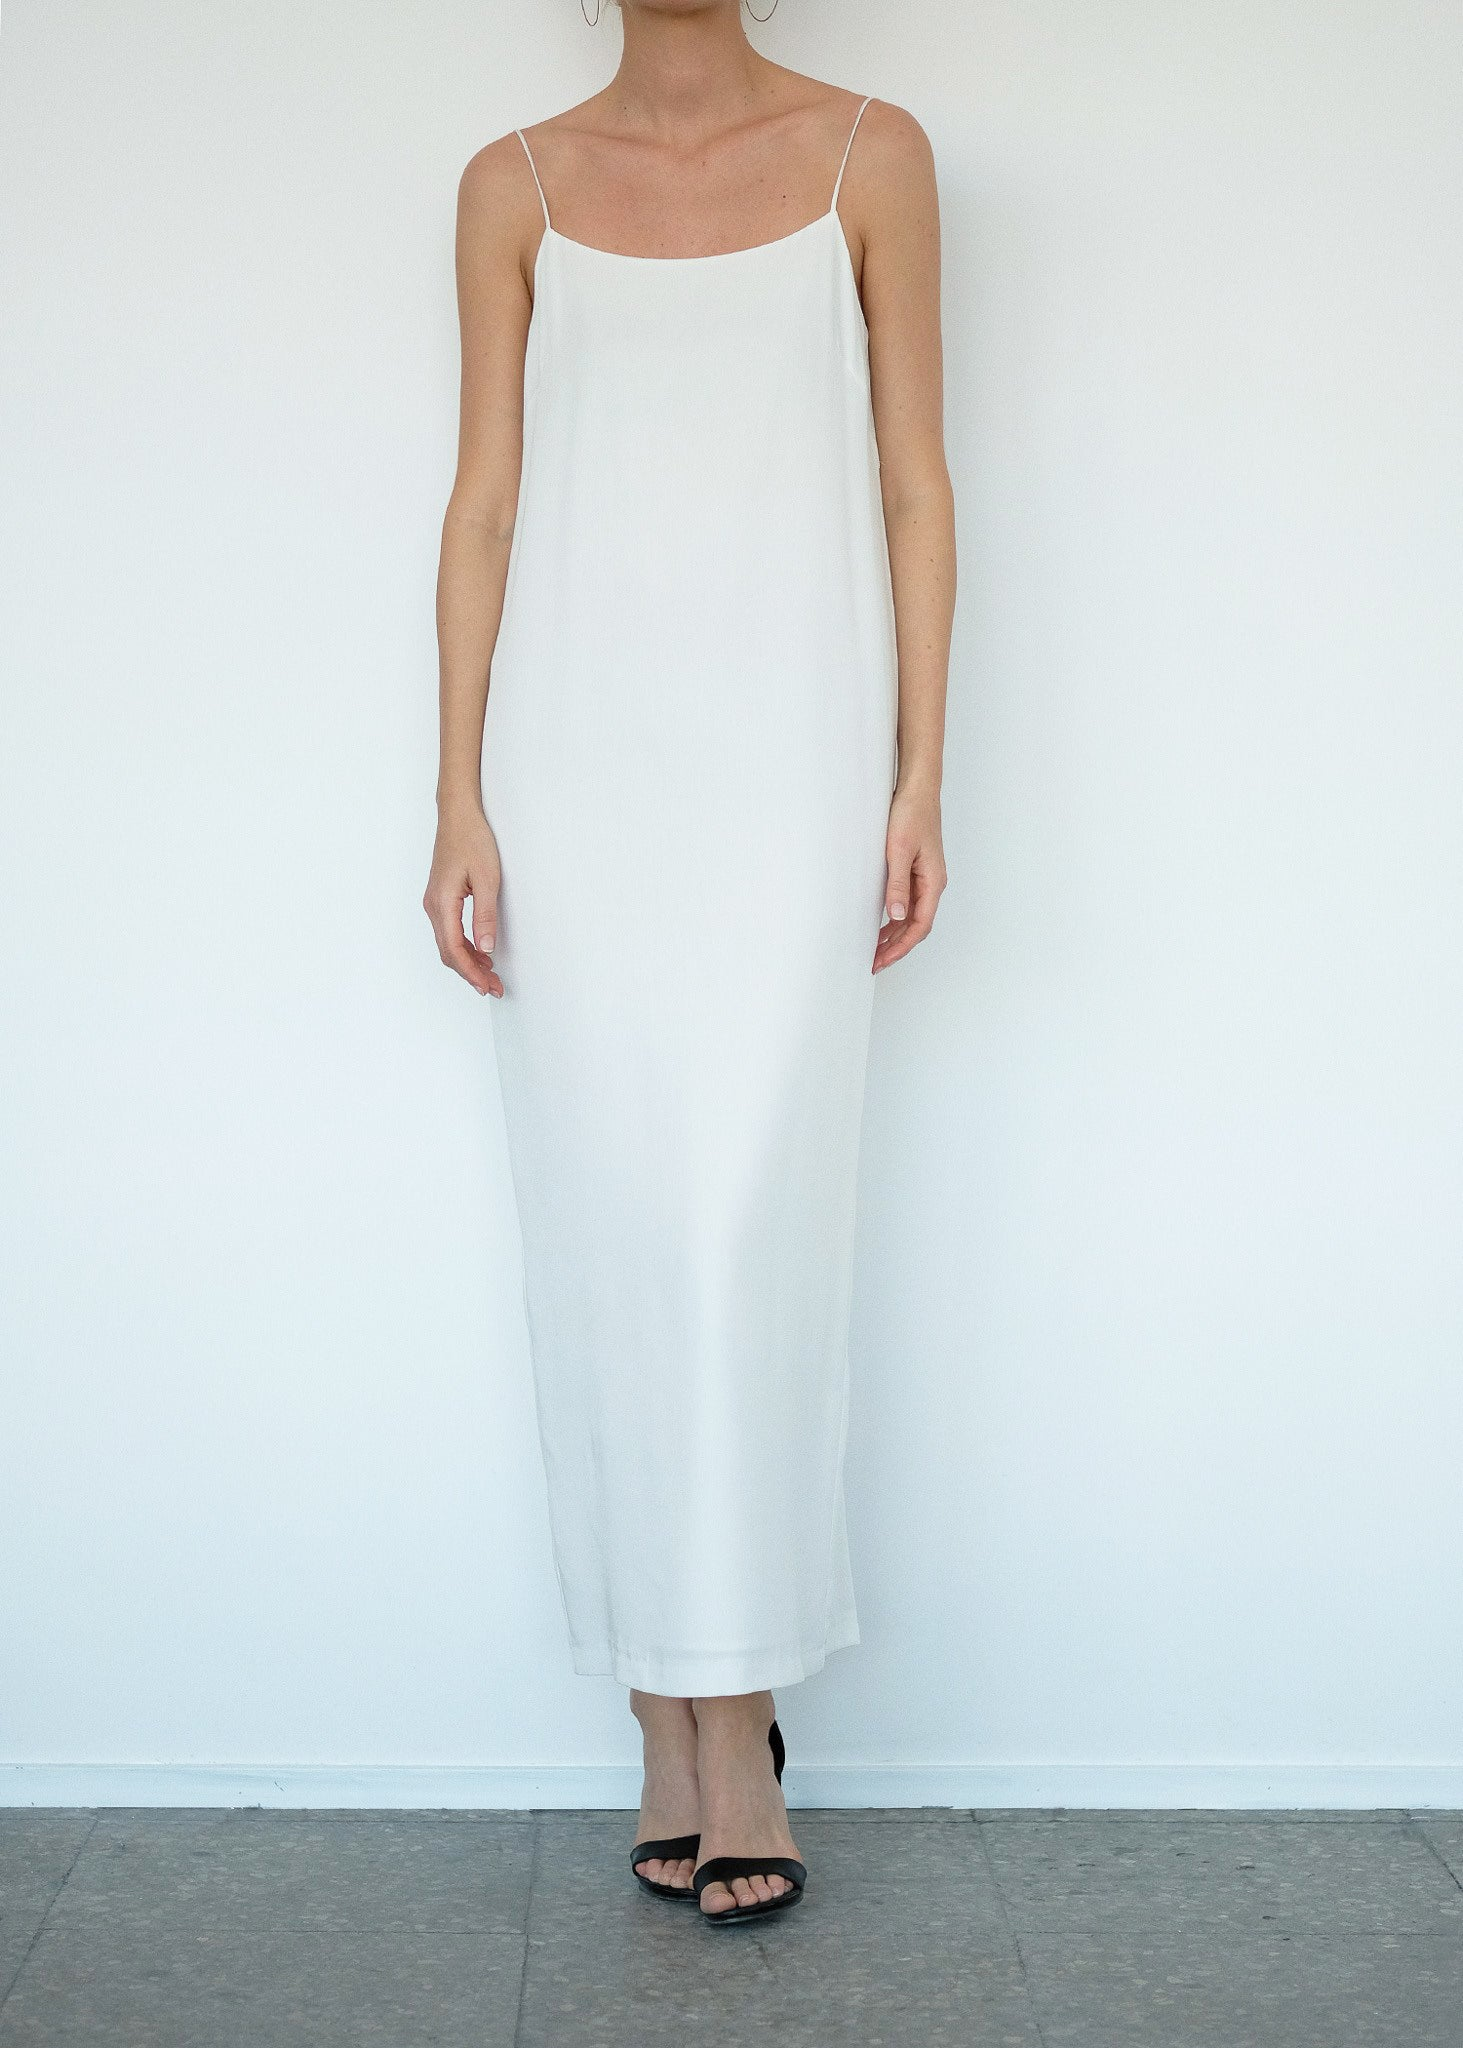 Studio August - LEENI dress ivory